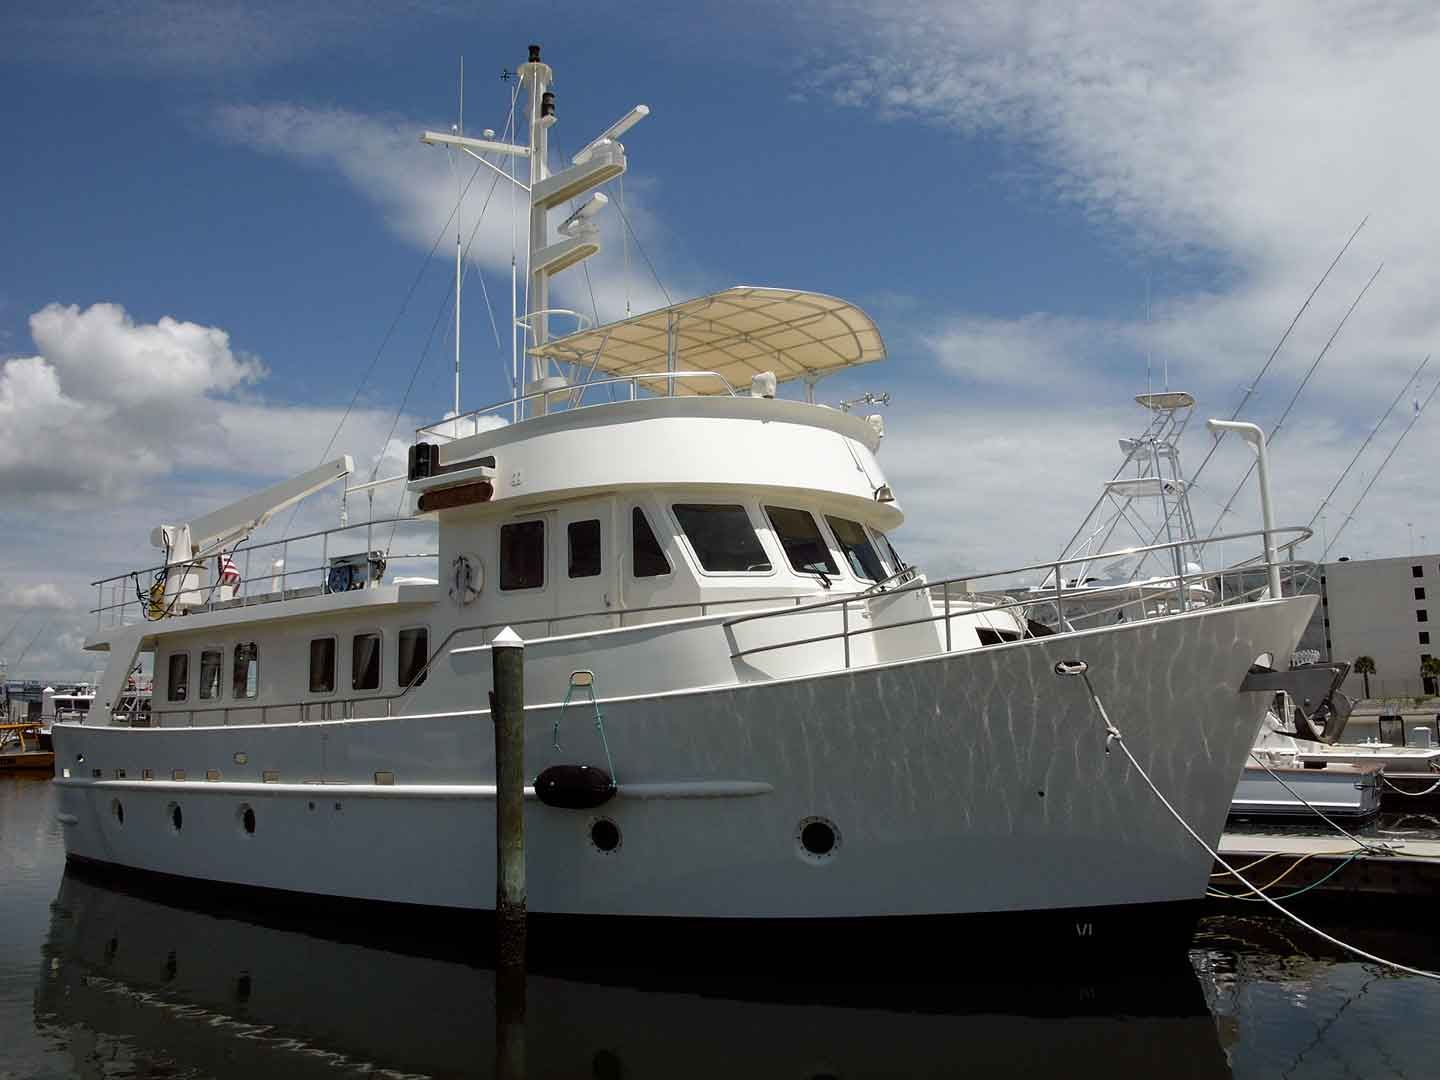 Trawler yachts used trawler yachts craigs list used for Fishing boats for sale craigslist